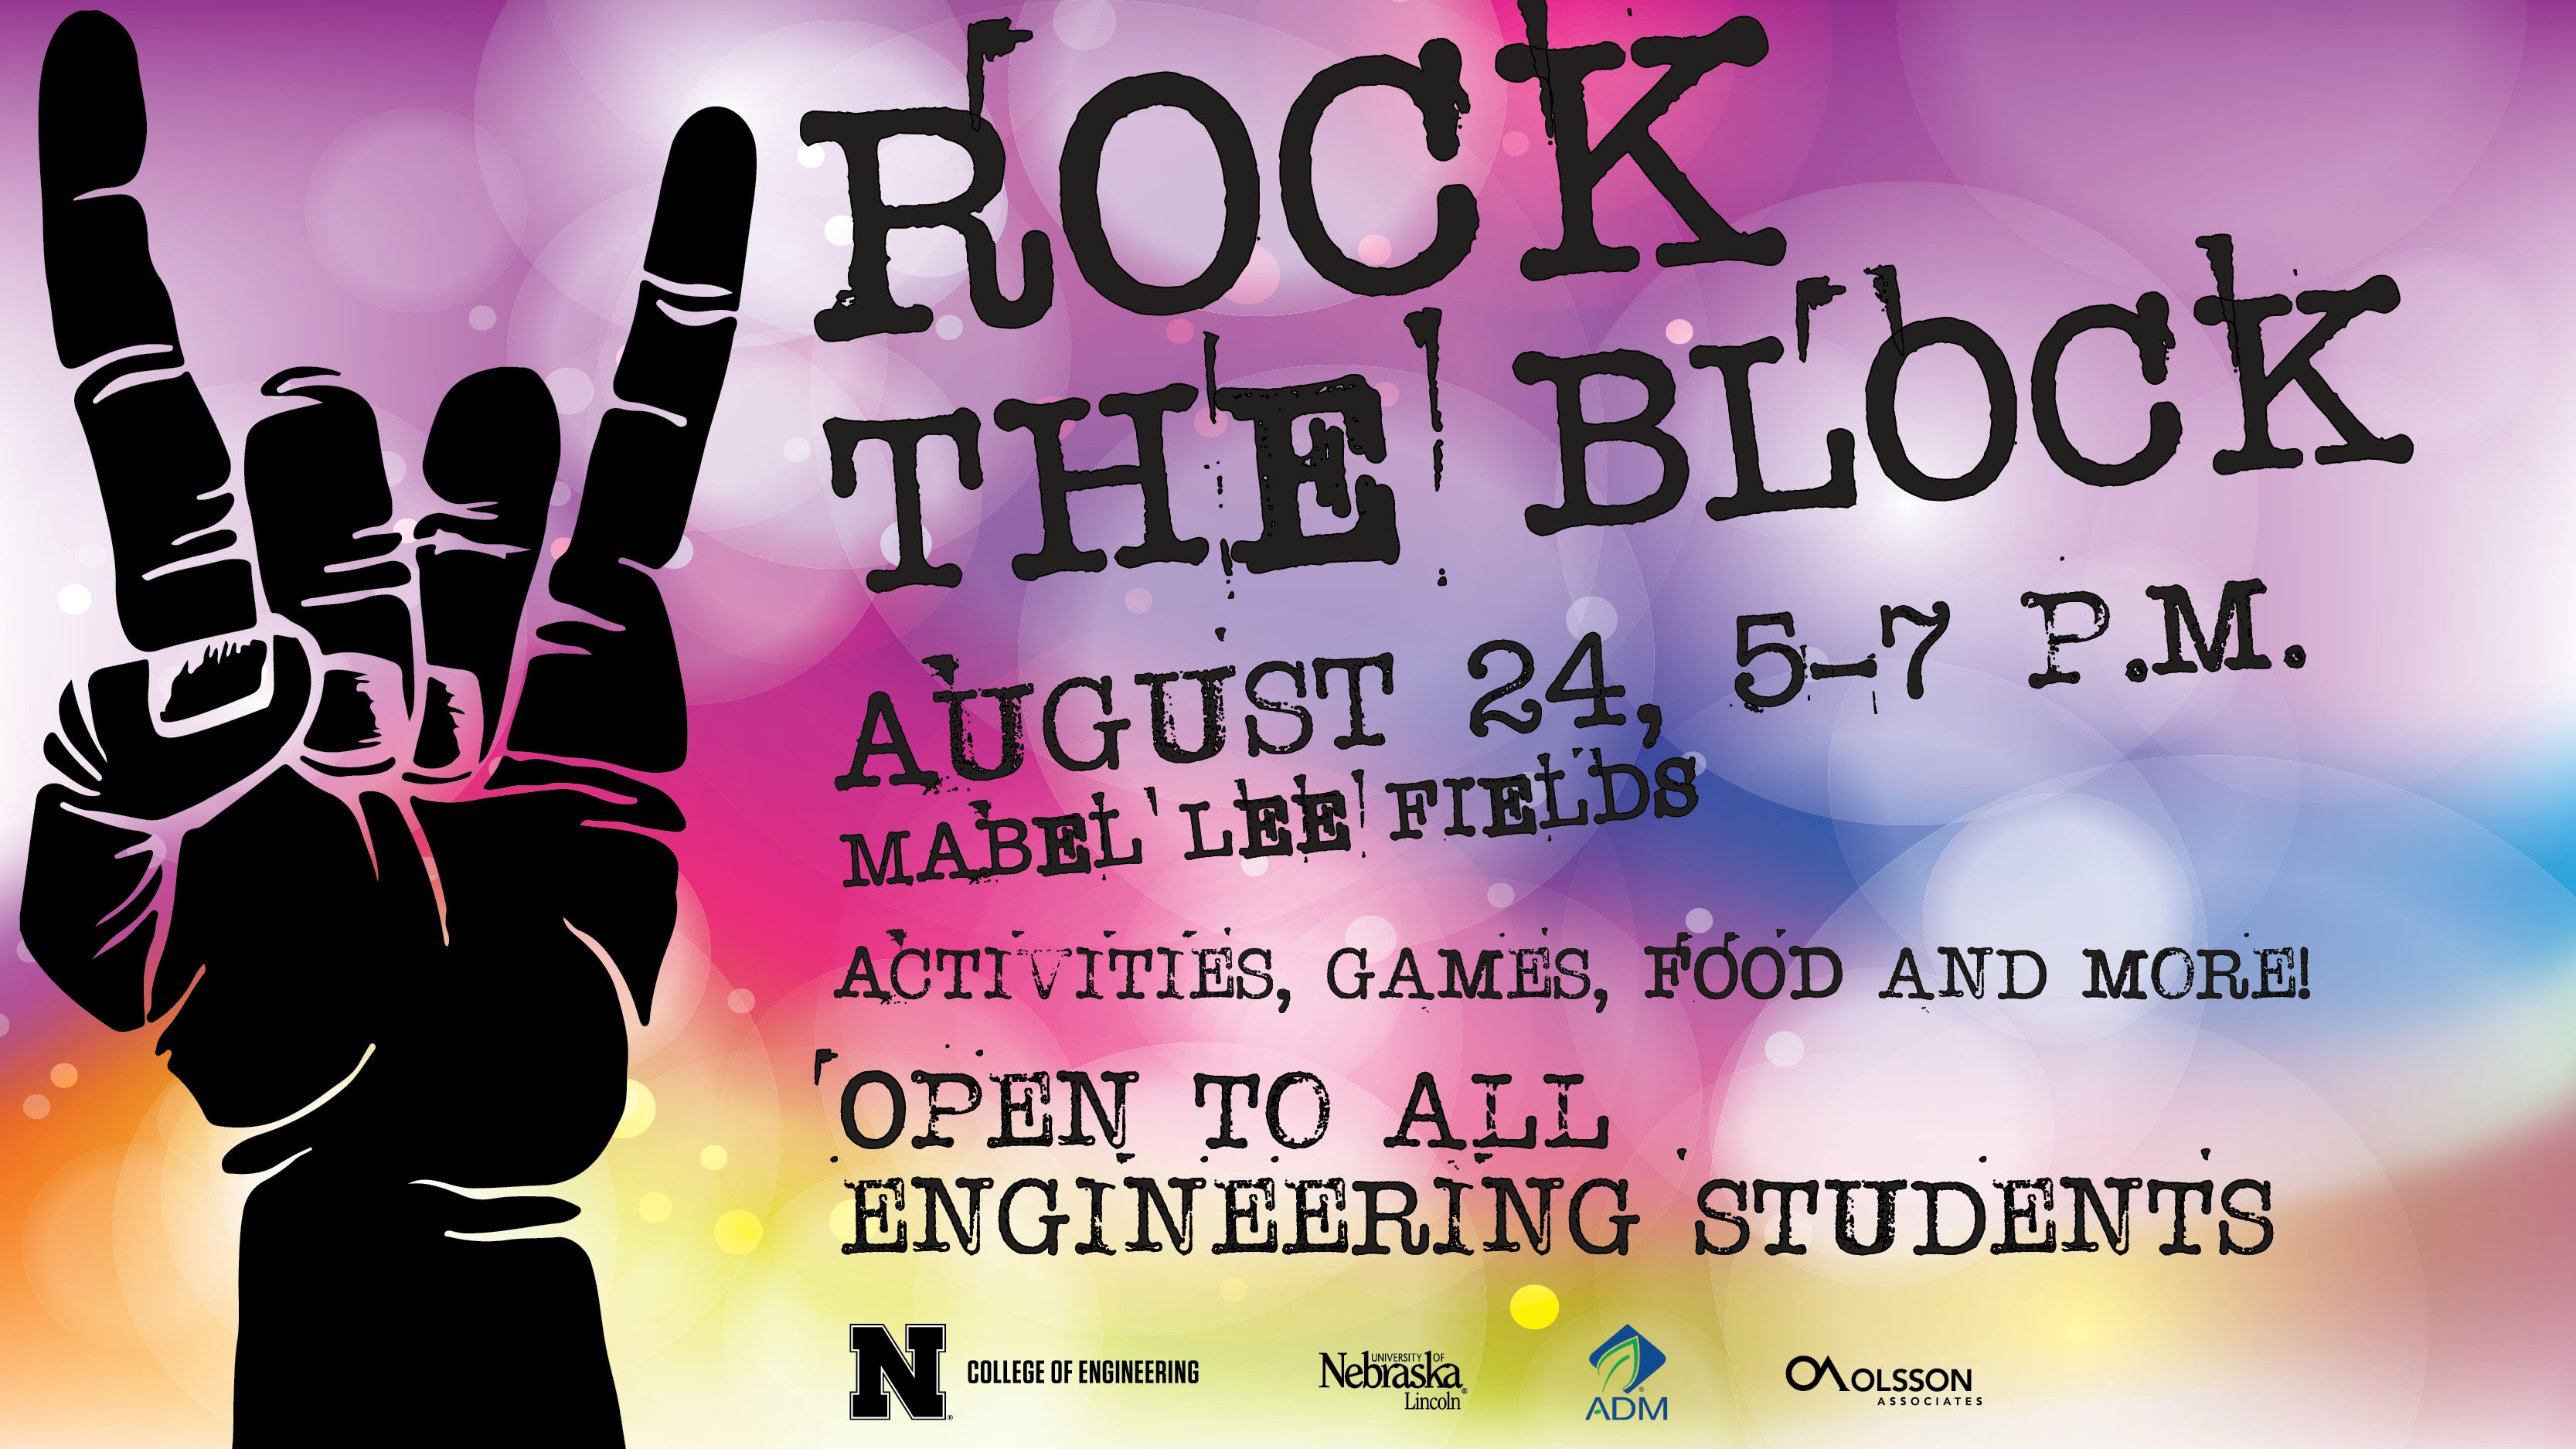 Rock the Block is Wednesday from 5-7 p.m. at Mabel Lee Hall.